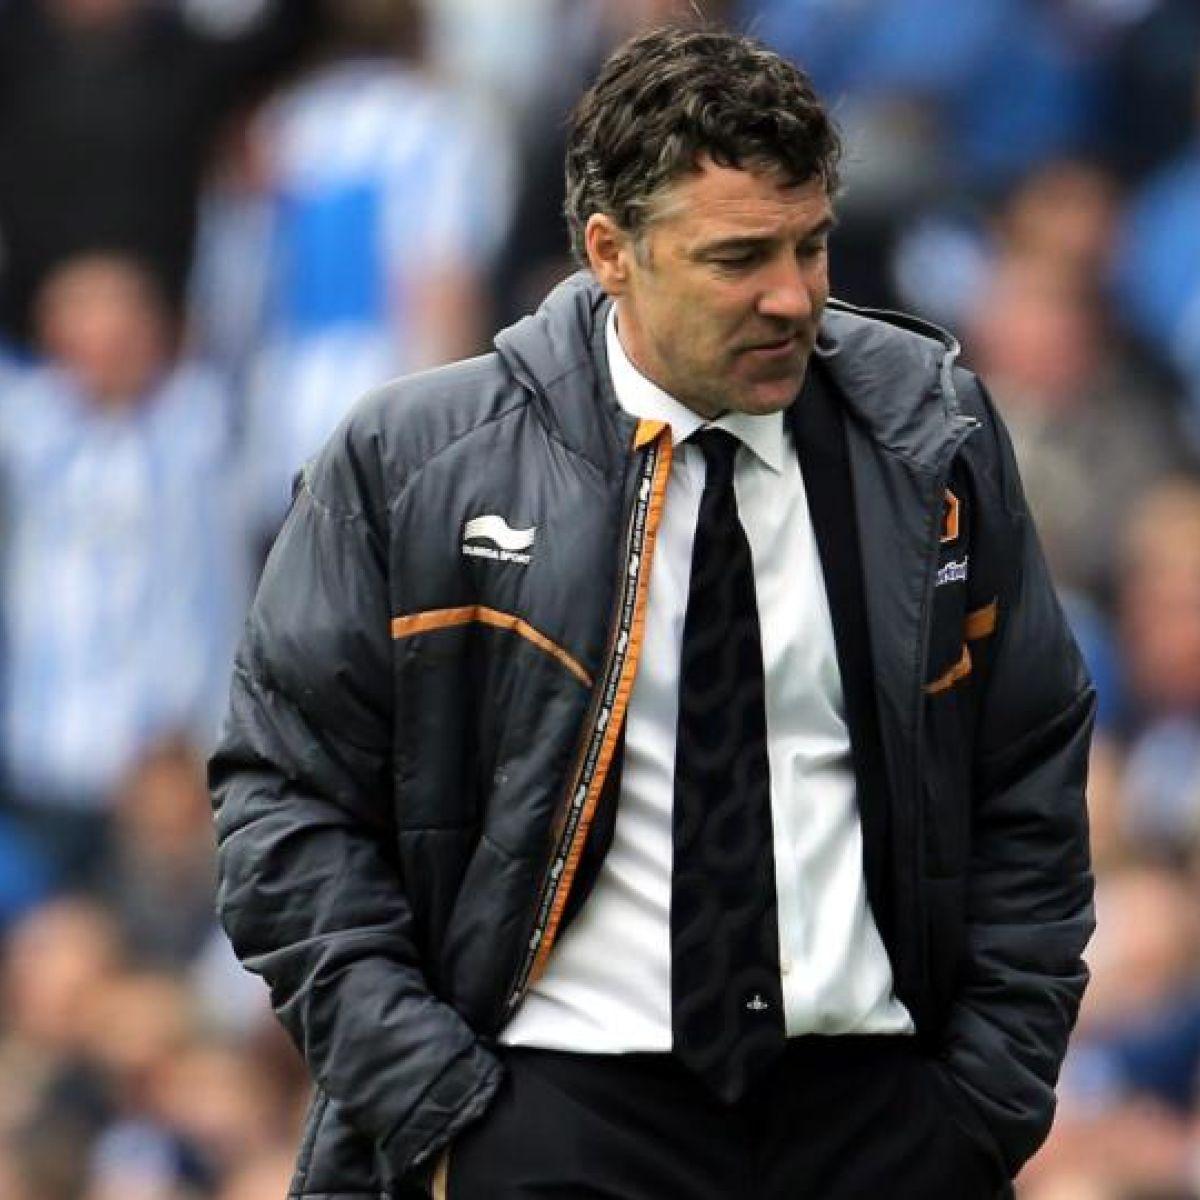 Wolves sack Dean Saunders following relegation to League One